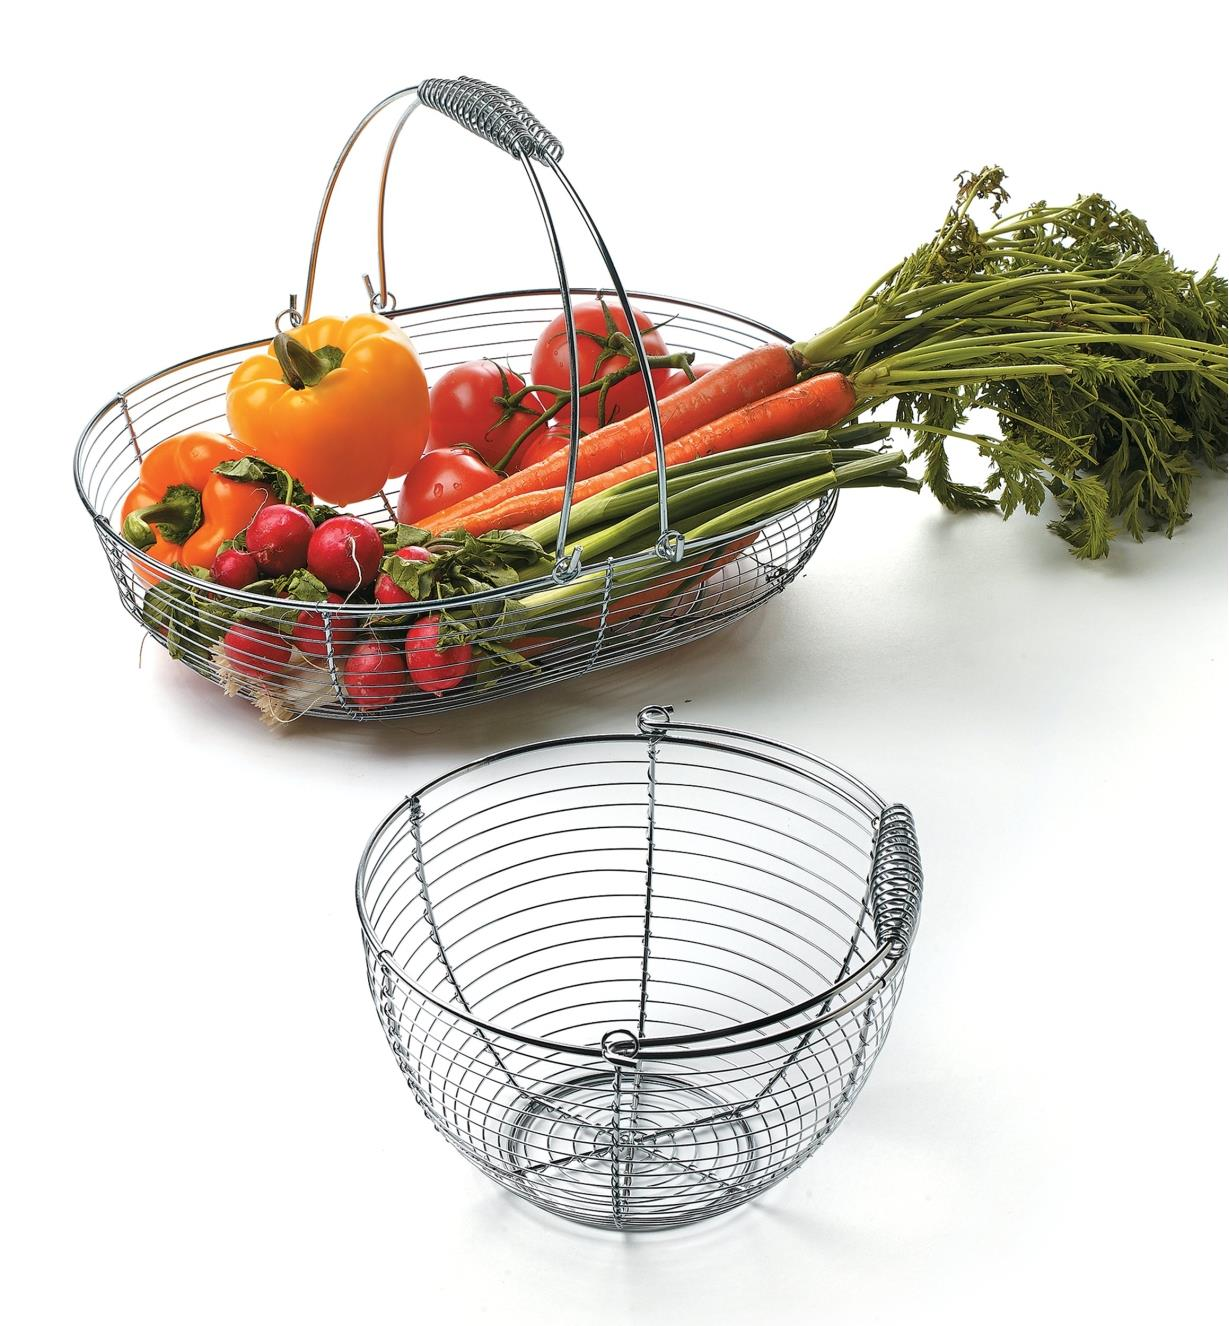 Large Wash Basket filled with garden vegetables, next to an empty small wash basket